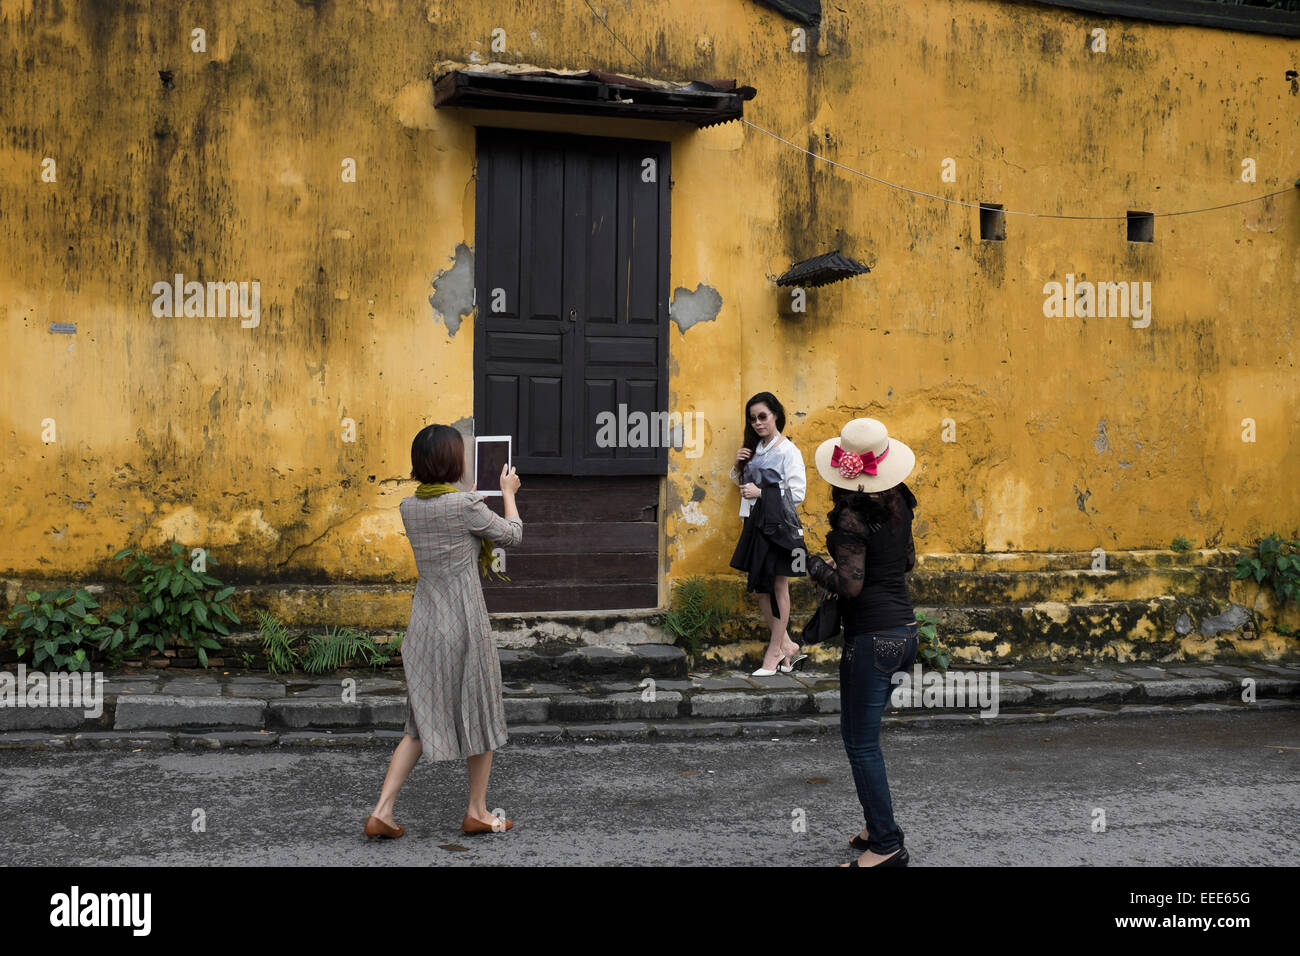 Tourists taking photos of each other in Hoi An Stock Photo